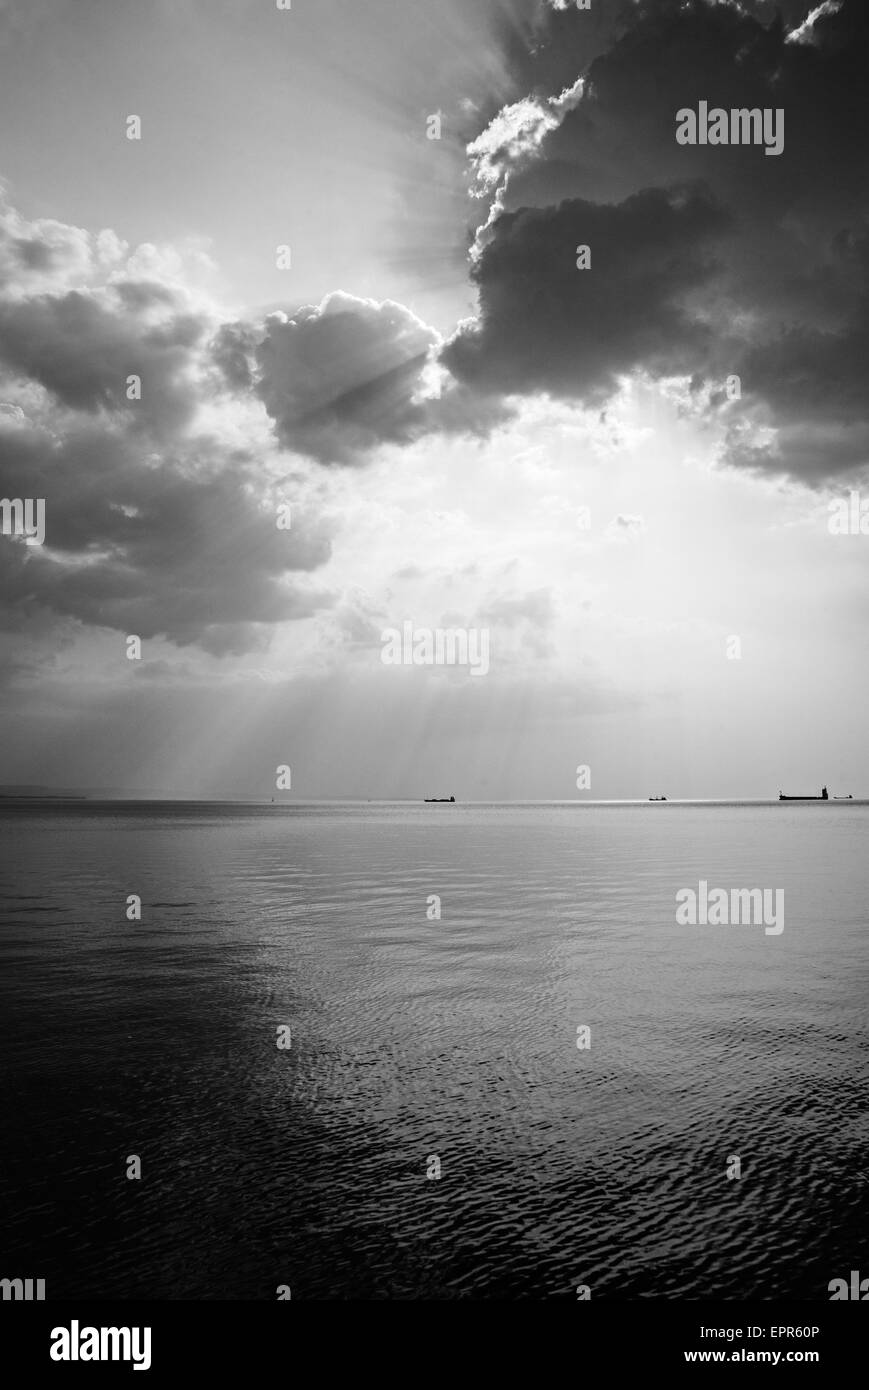 Scattered clouds produce beautiful rays of sunlight over the ships entering and leaving trieste Bay, Italy. - Stock Image